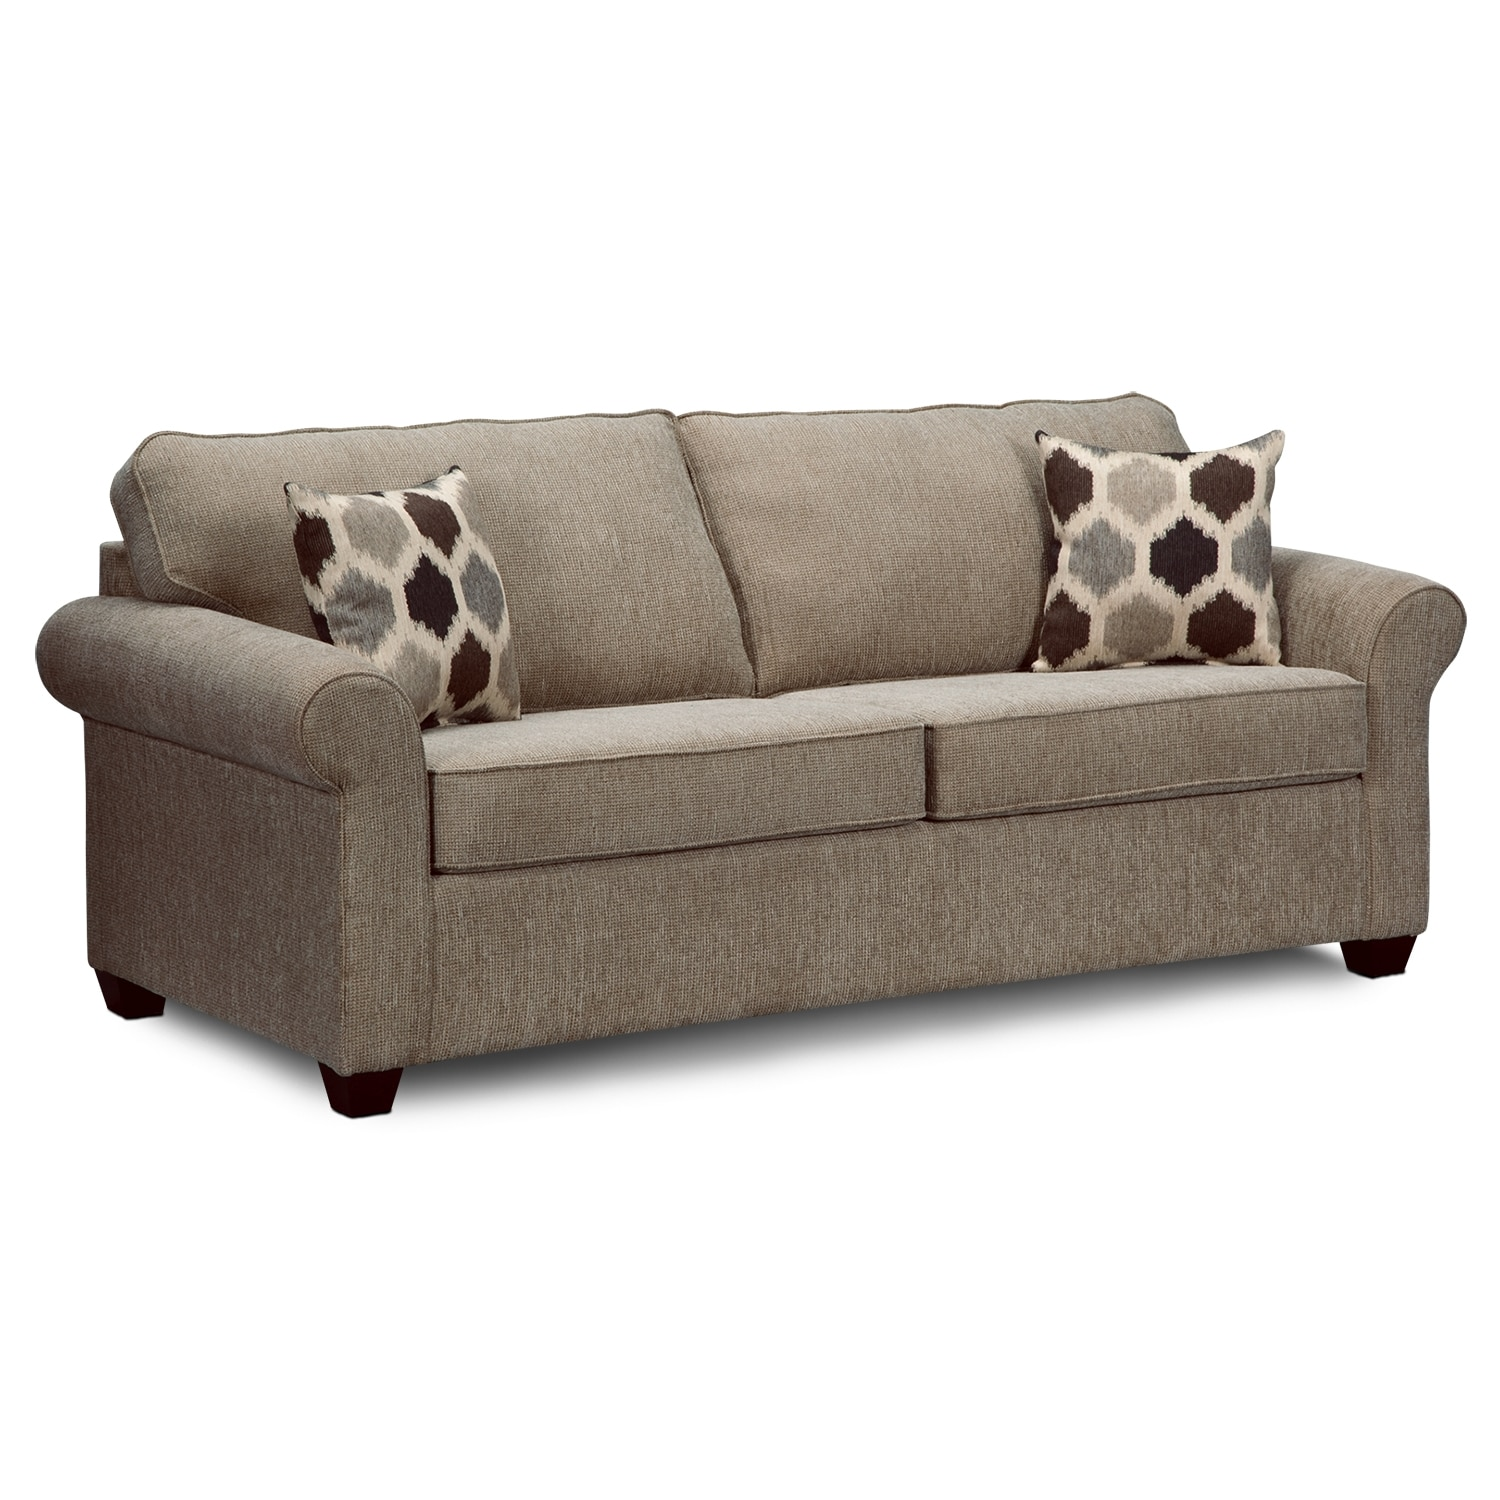 american signature furniture fletcher upholstery queen sleeper sofa